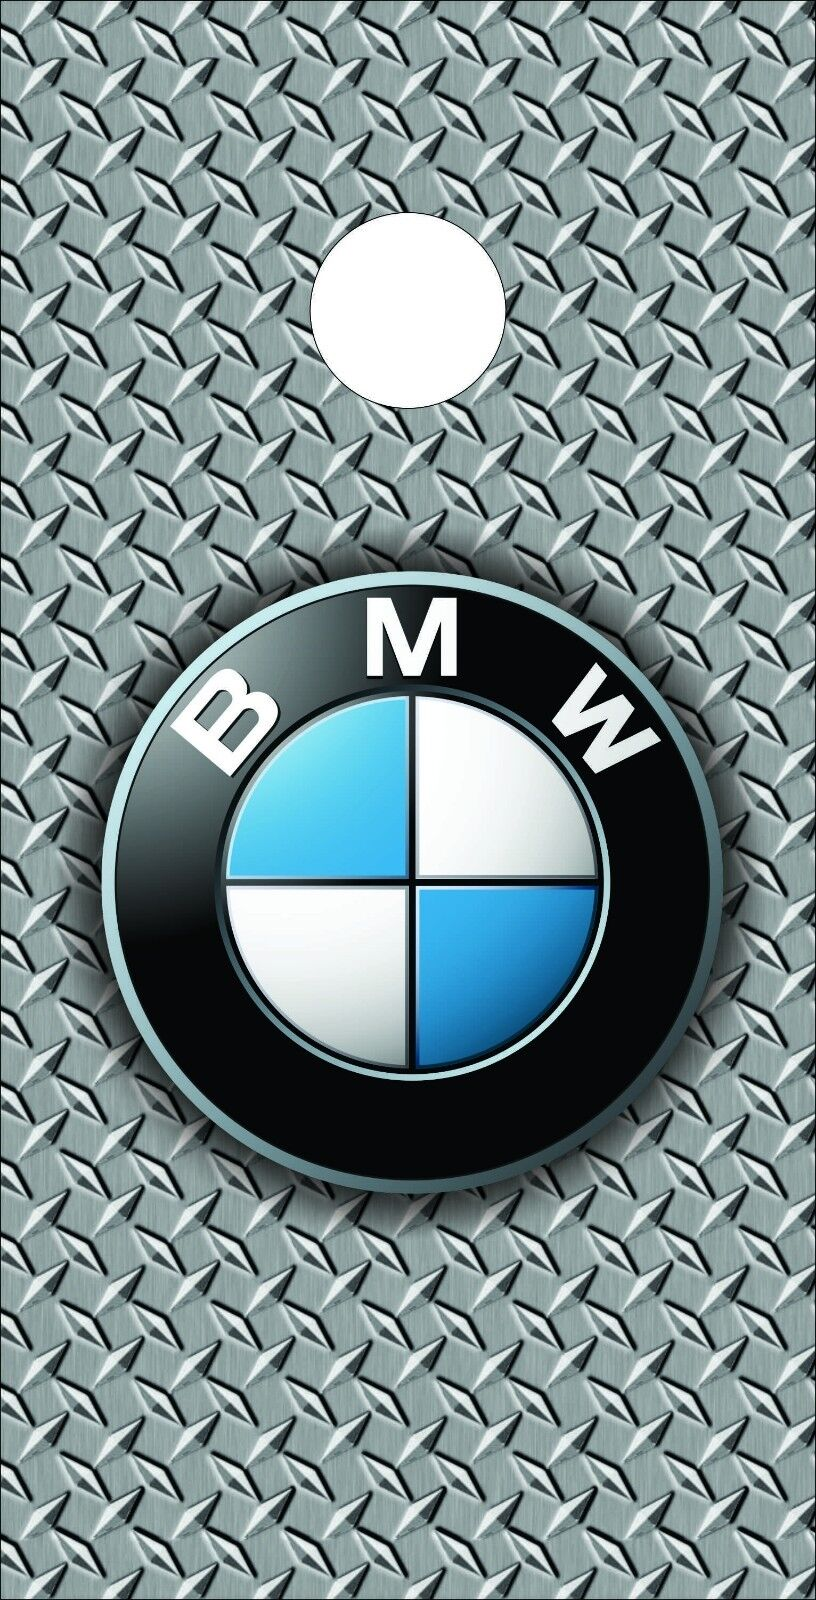 Corn Hole Graphic  - BMW cars and suvs  leisure